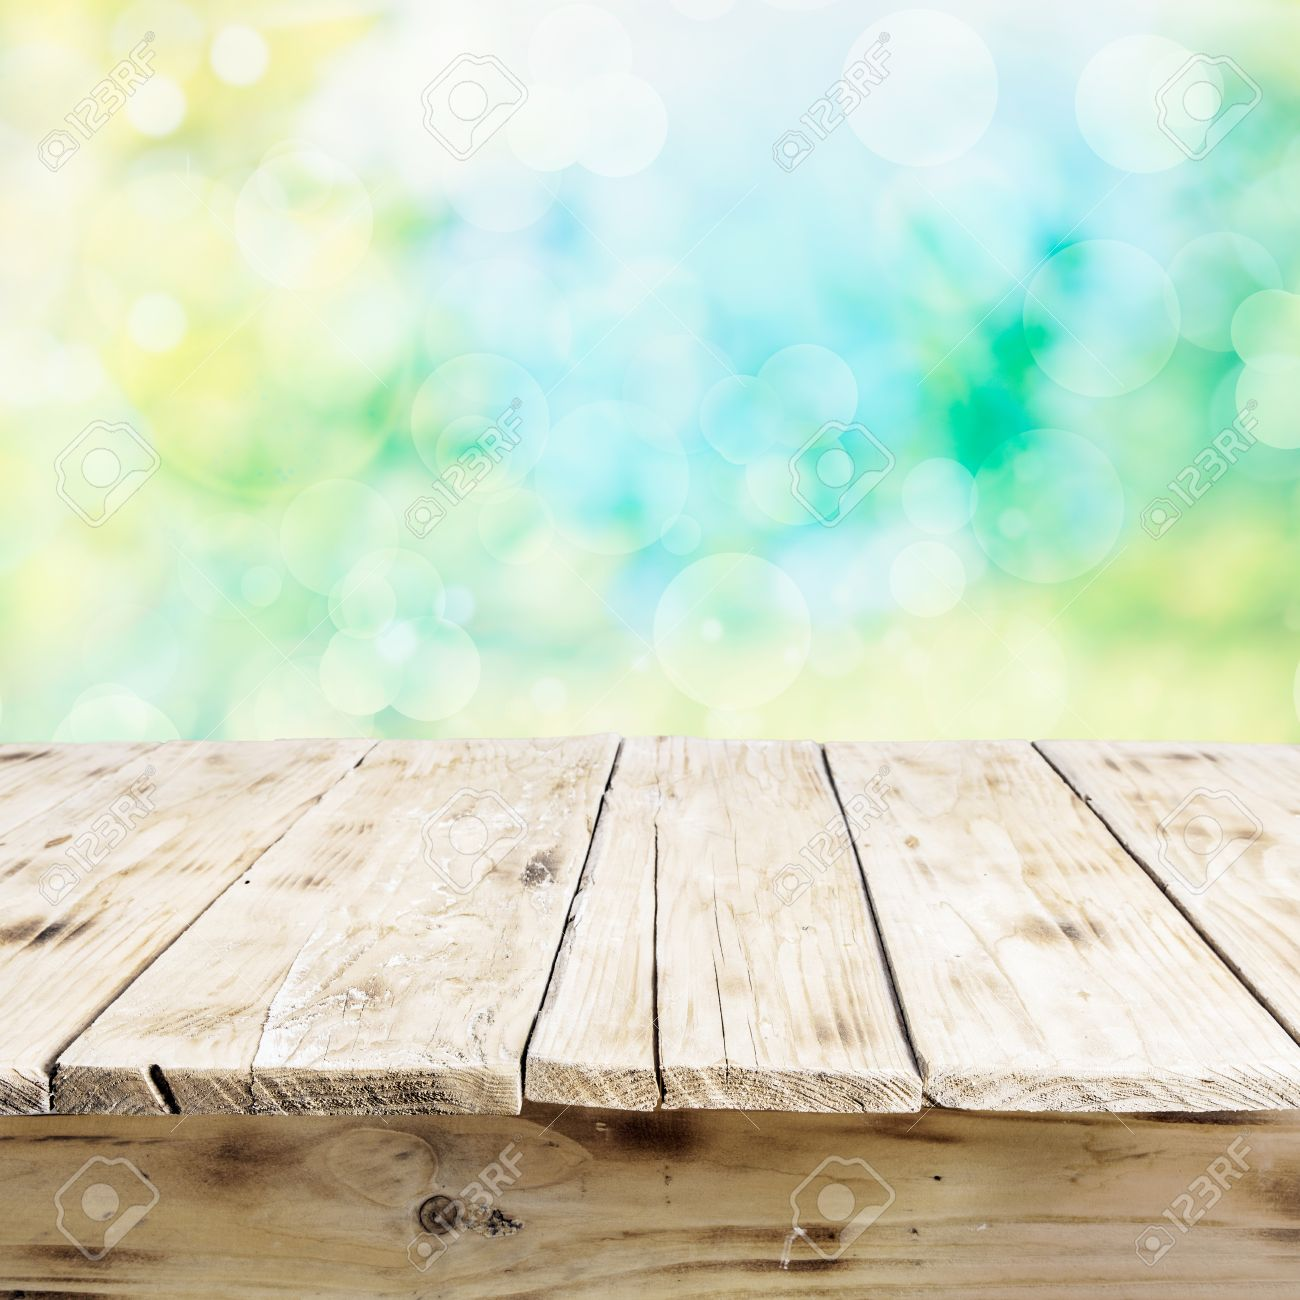 Wood table background hd - Table Background Empty Old Wooden Table With A Weathered Rustic Surface Viewed Low Angle For